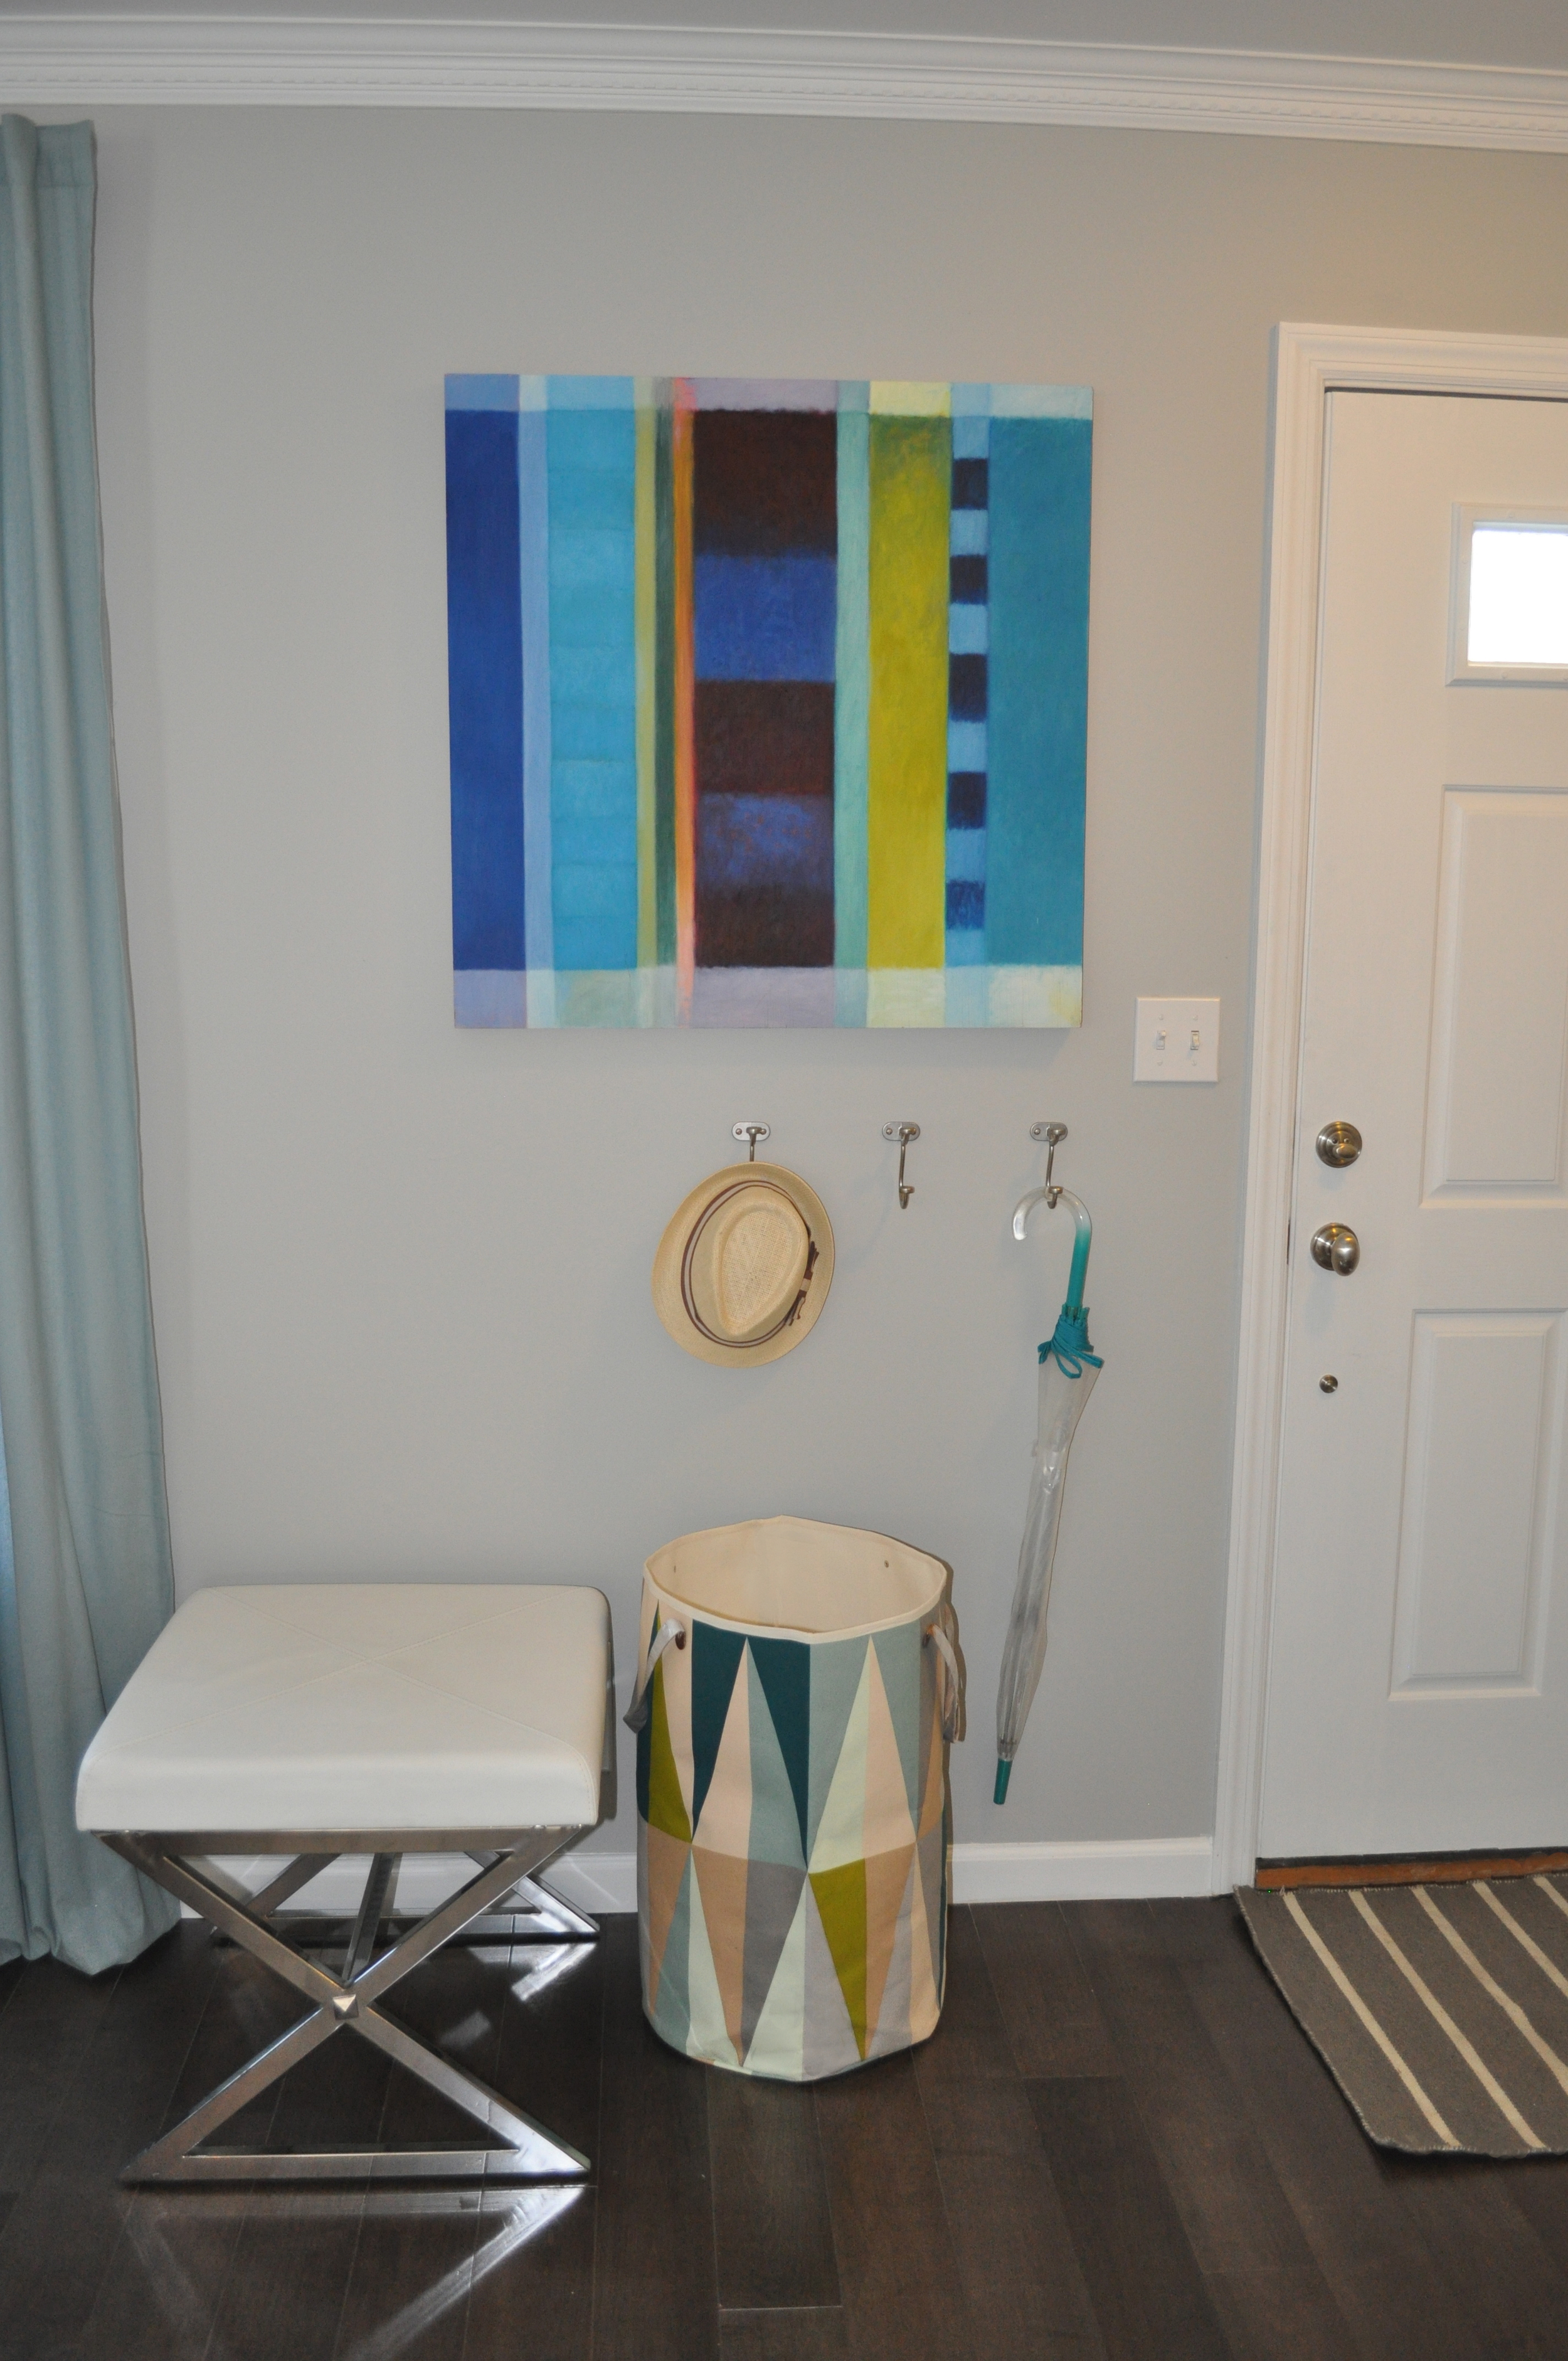 Kim MItchell Production Designer_HGTV_Buying and Selling with The Property Brothers_Season 3_Episode 316_Entry_Kenise Barnes Gallery Art_Kontrast Accessories.jpg